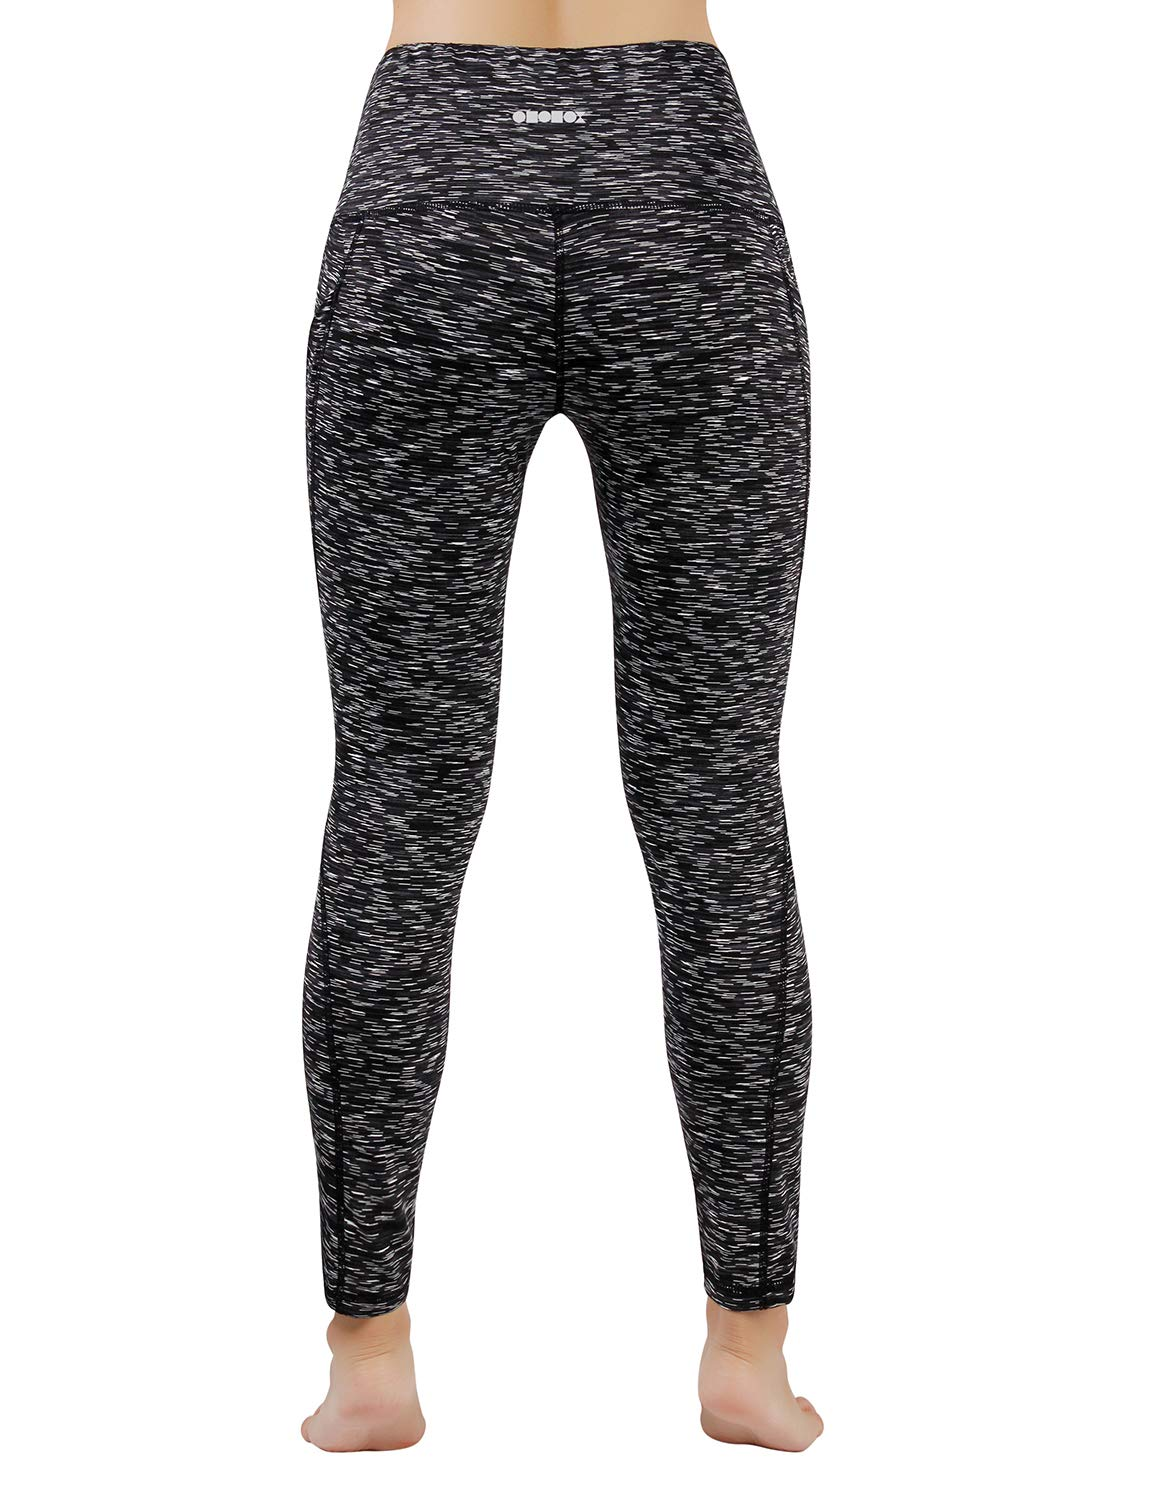 ODODOS Women's High Waist Yoga Pants with Pockets,Tummy Control,Workout Pants Running 4 Way Stretch Yoga Leggings with Pockets,SpaceDyeMattBlack,all sizes available - Ctfitnesswear